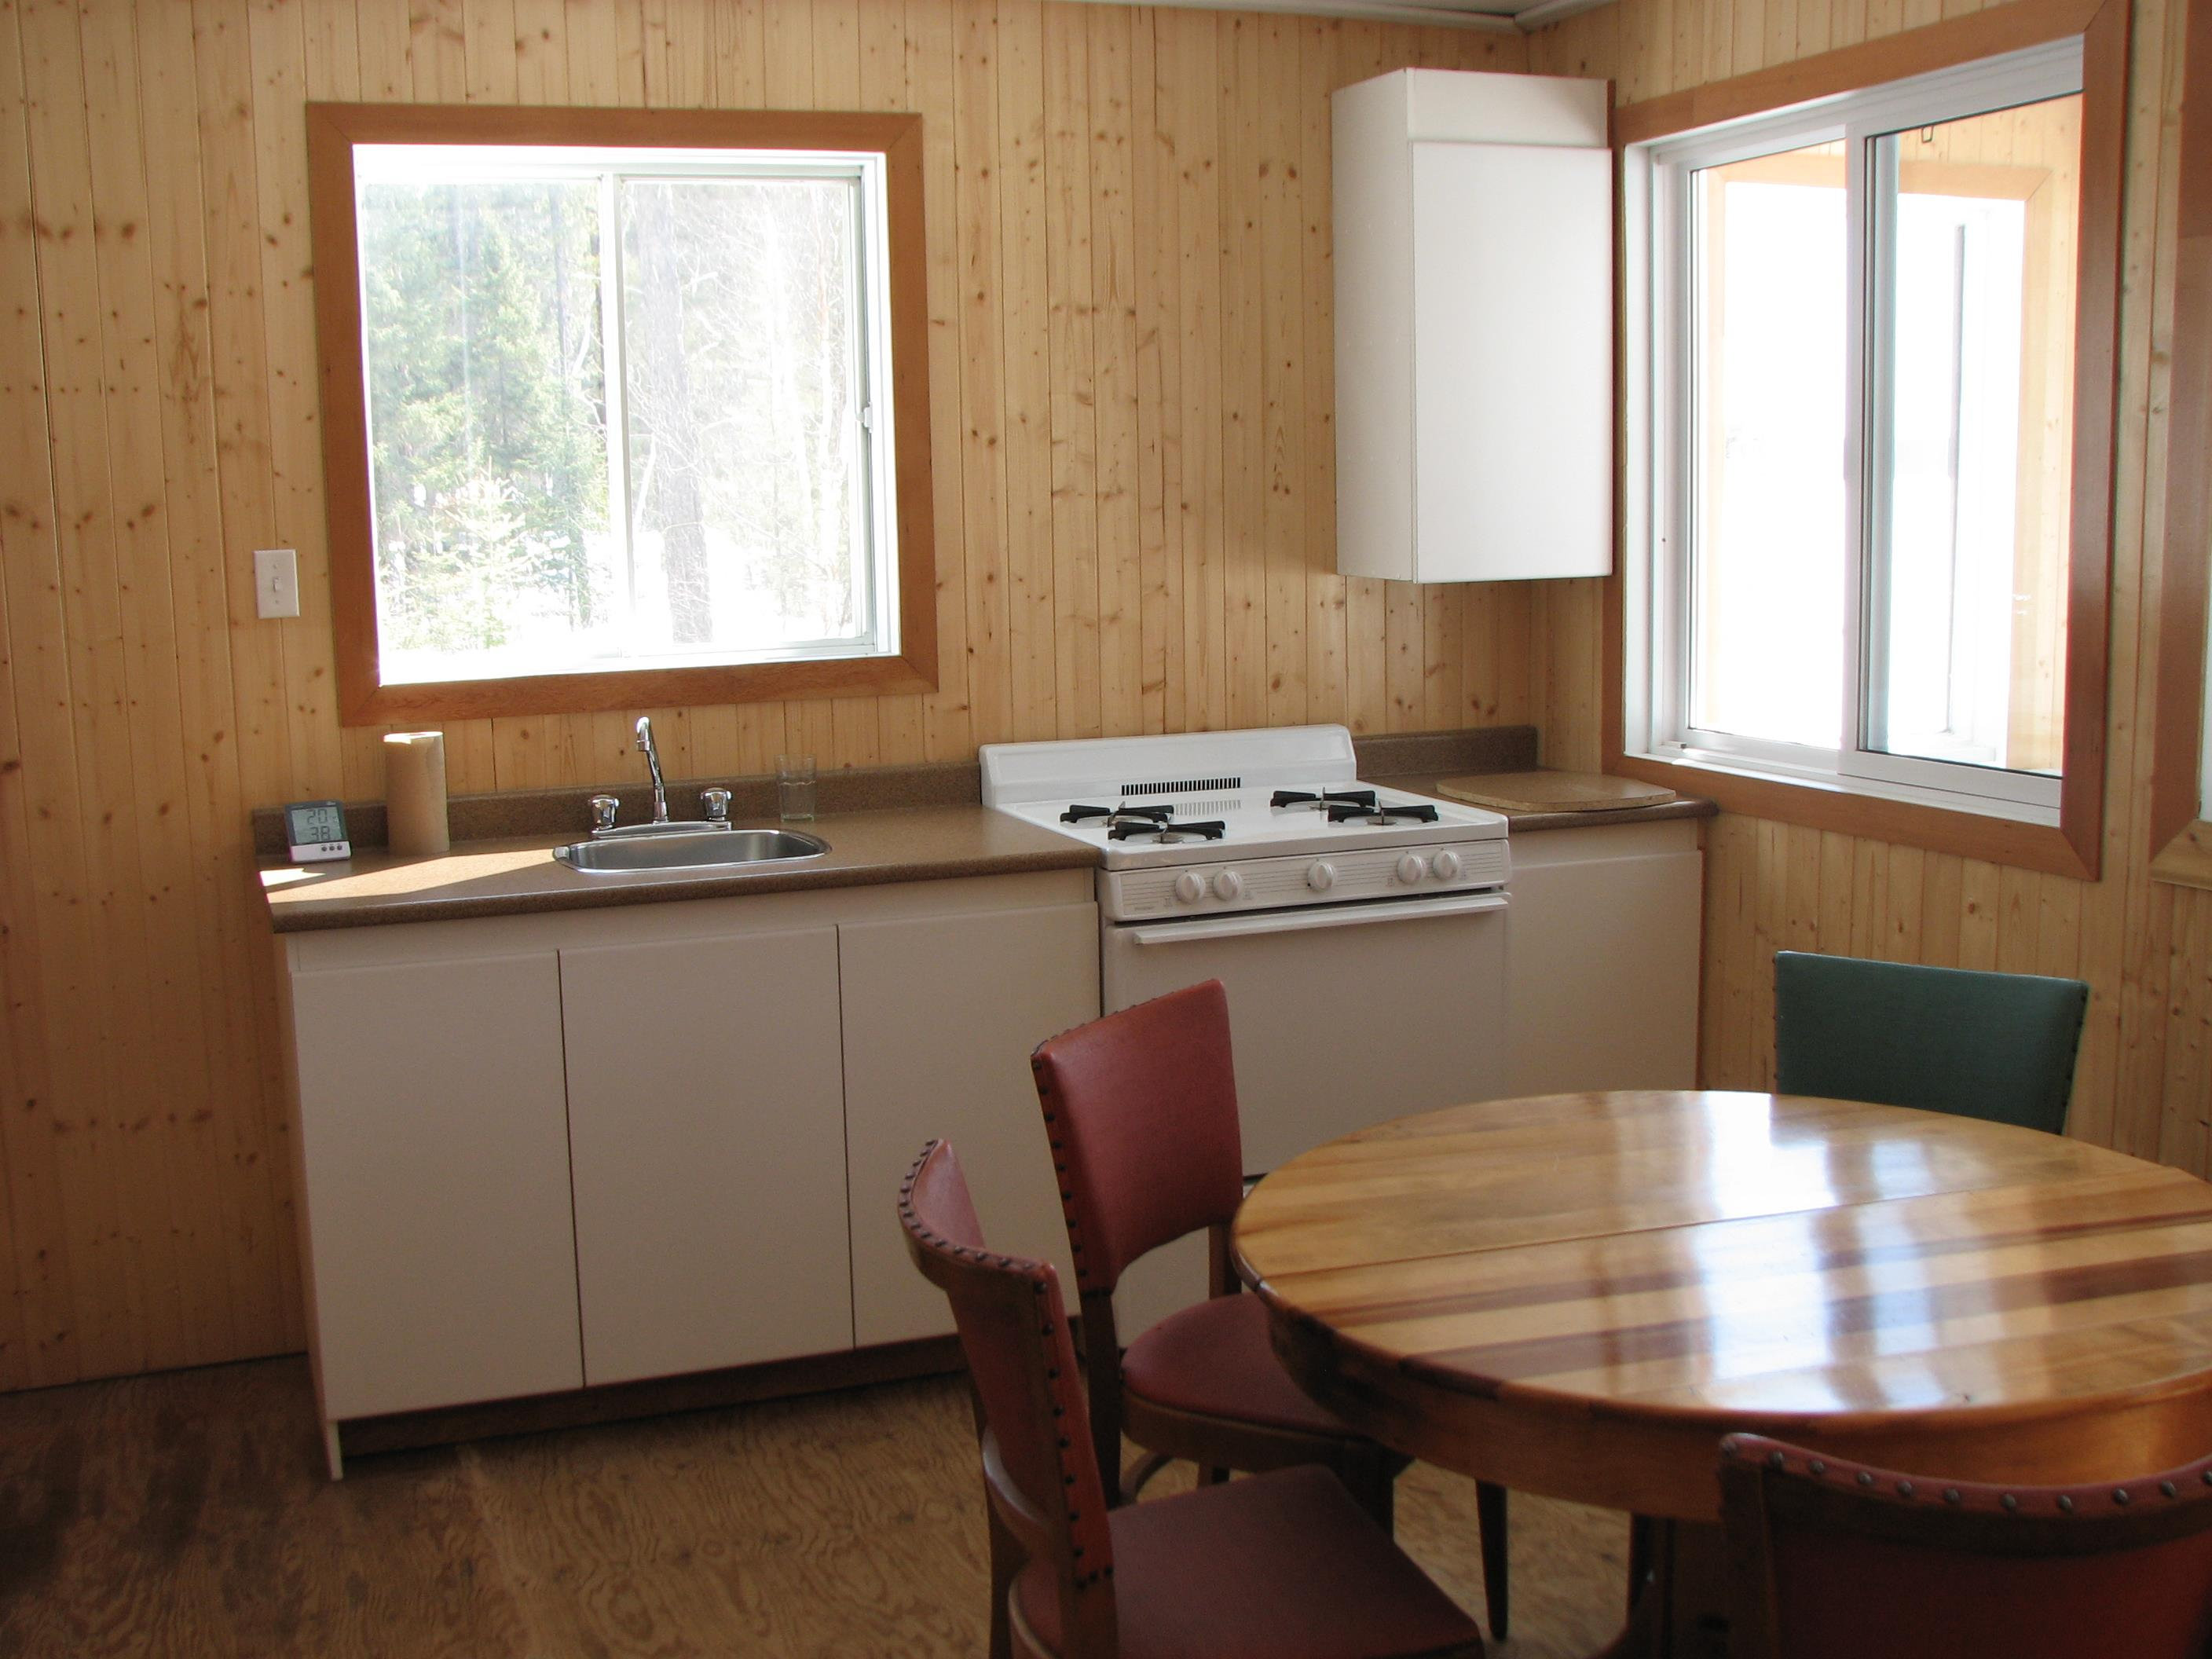 Chalets kitchen at windigo